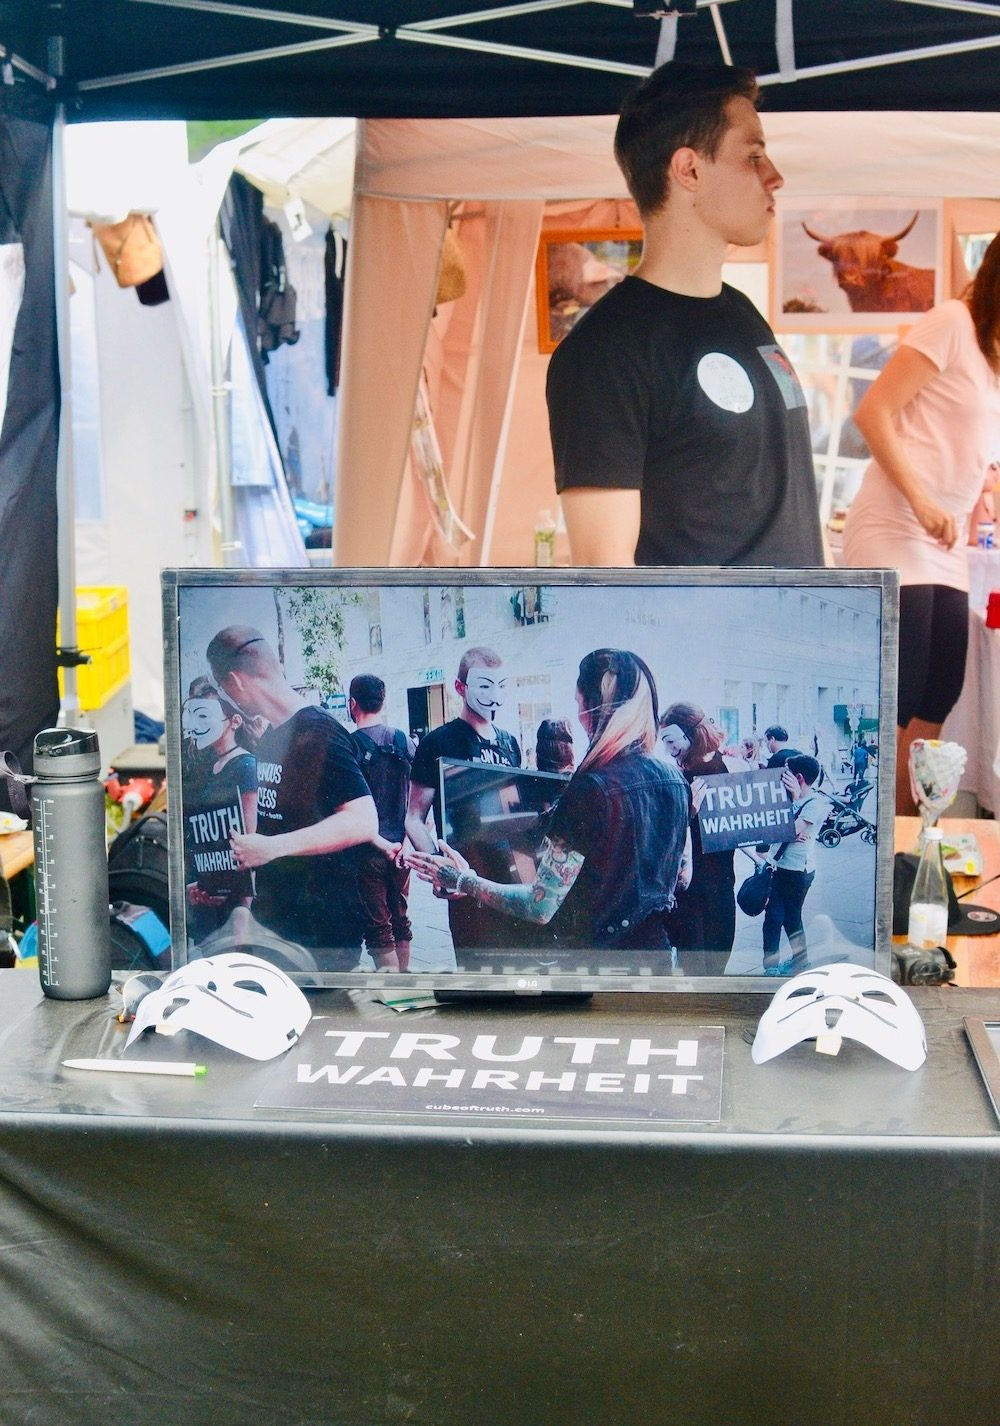 The Anonymous for the Voiceless stall showing footage of the cube of truth